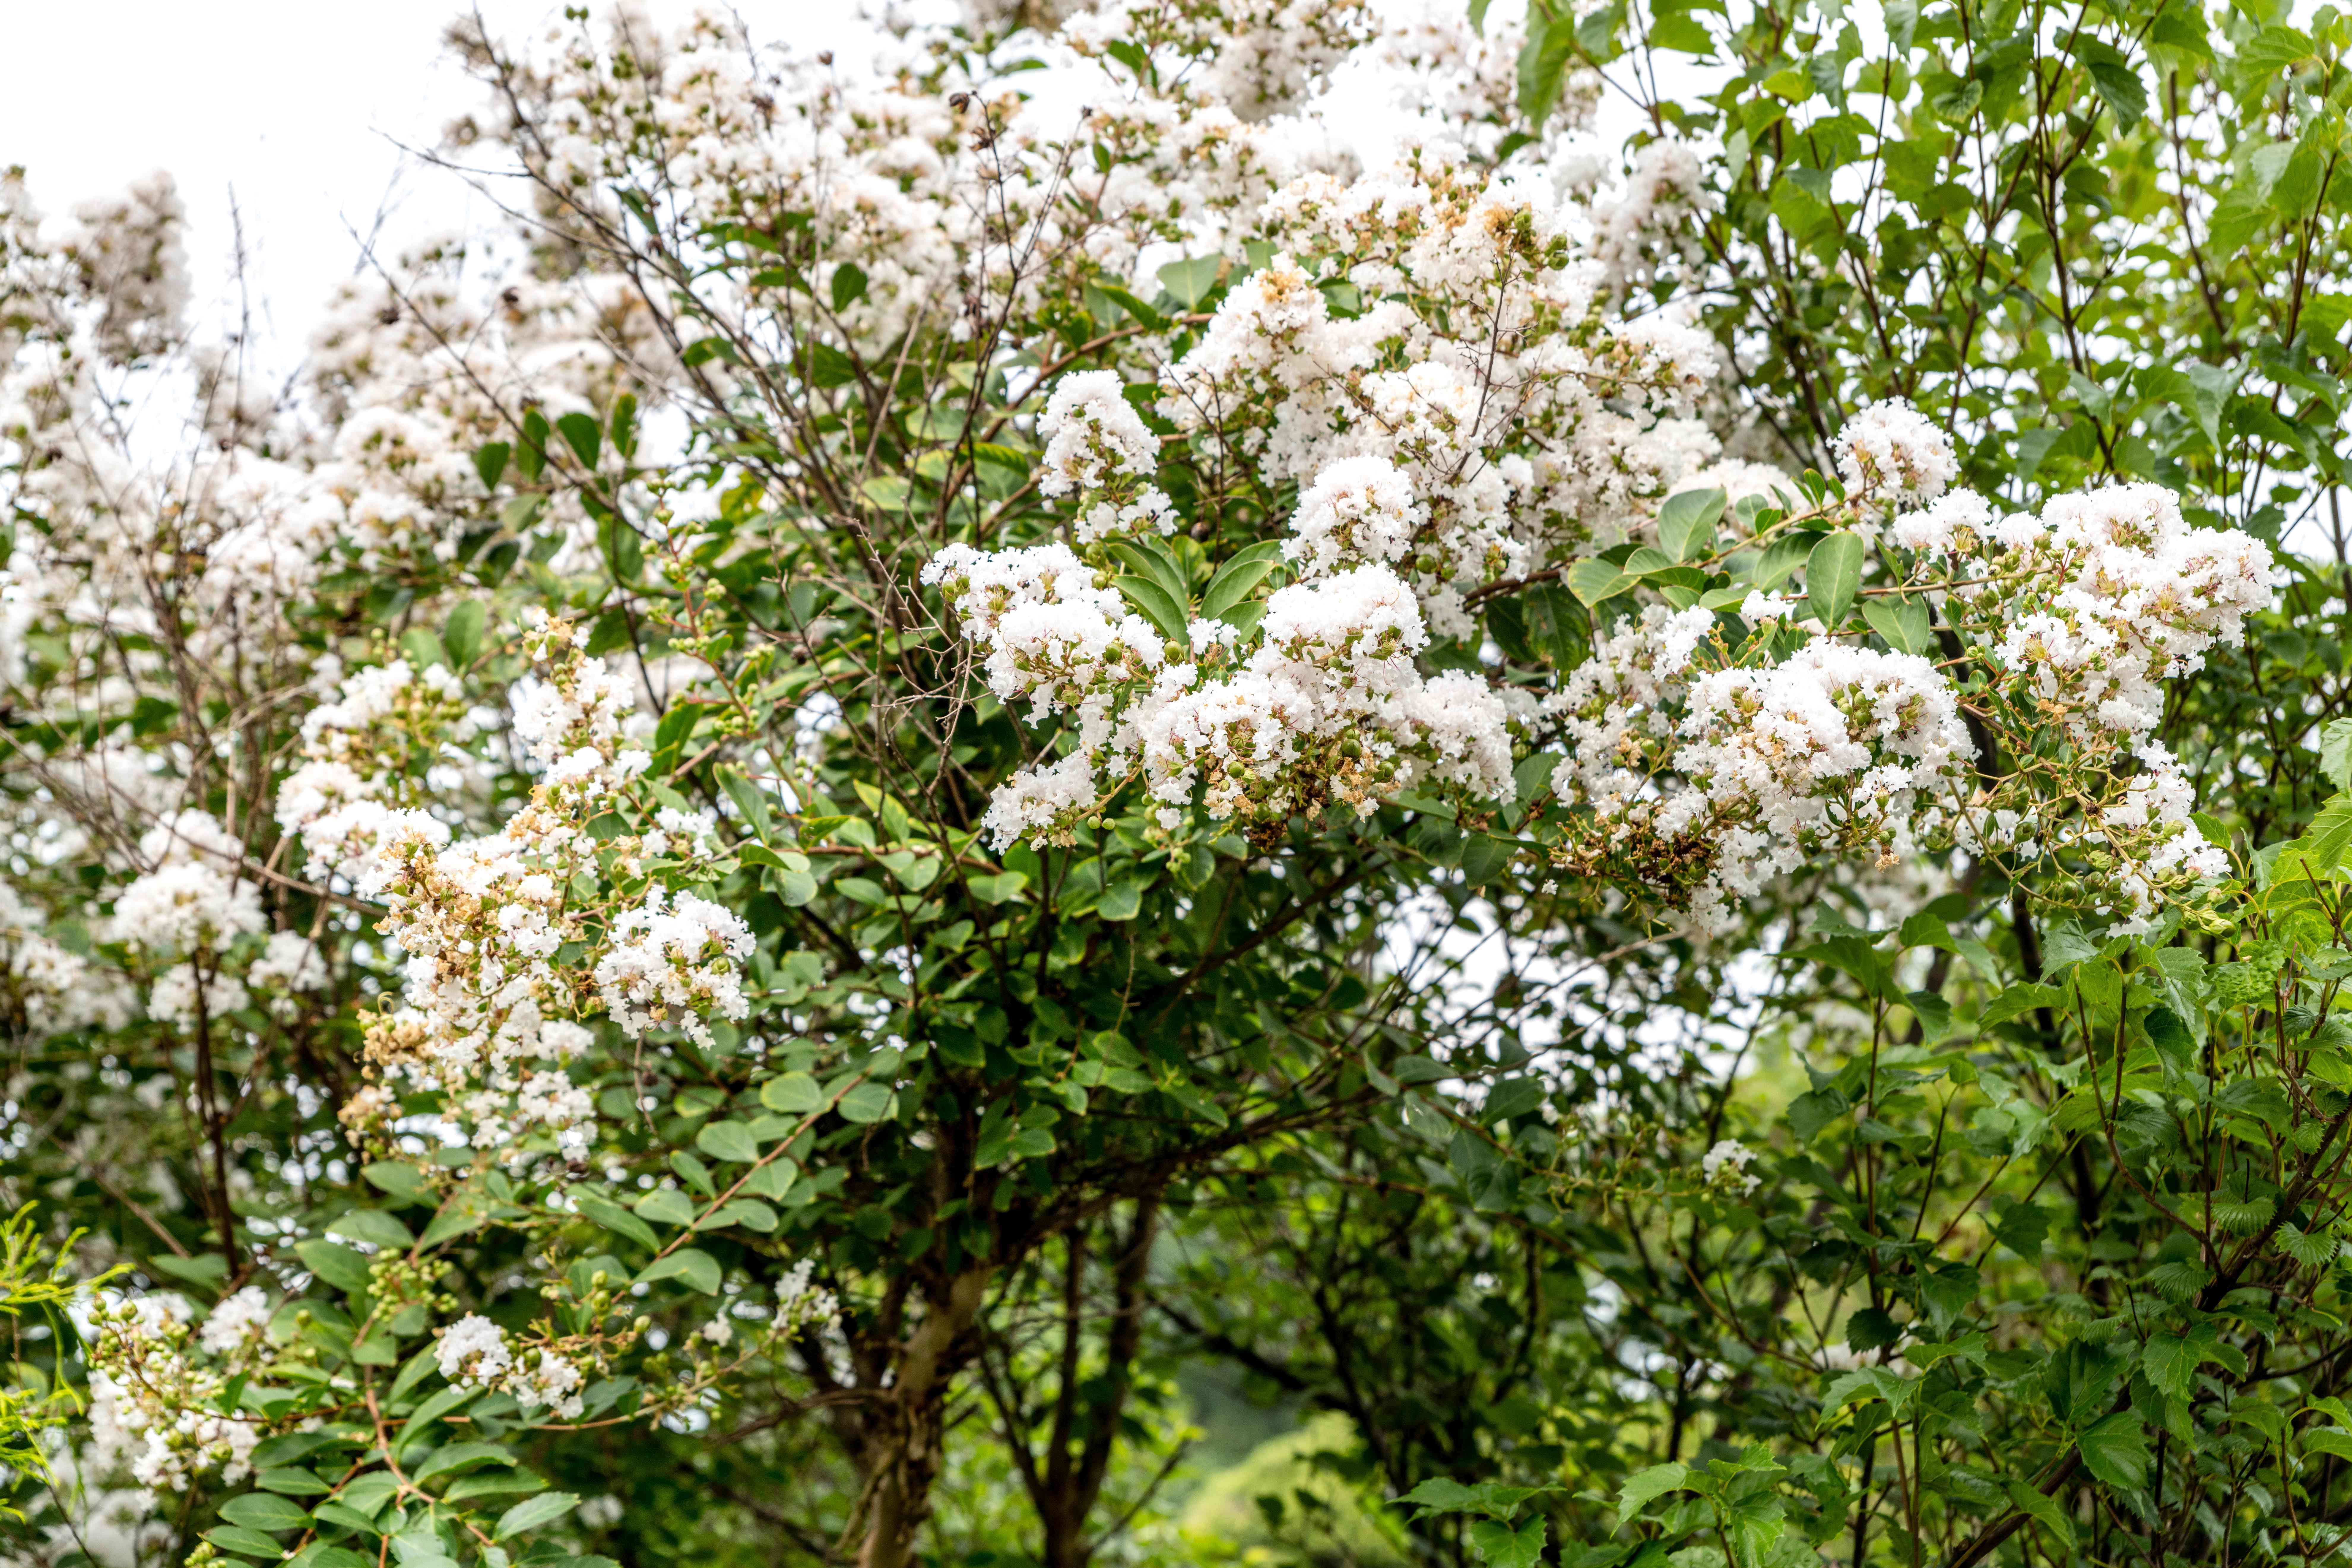 Acoma crepe myrtle tree with lush foliage and white bloom clusters on branches